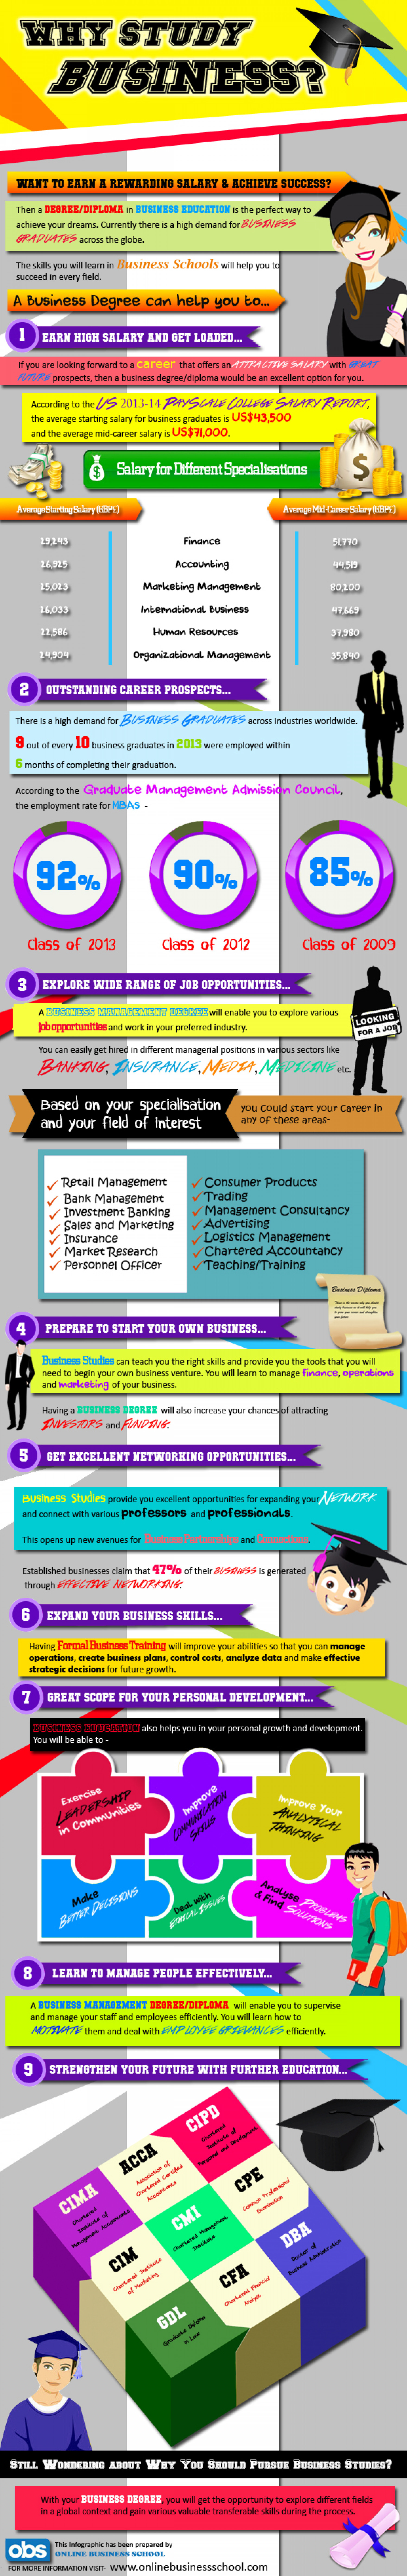 Why Study Business? Infographic